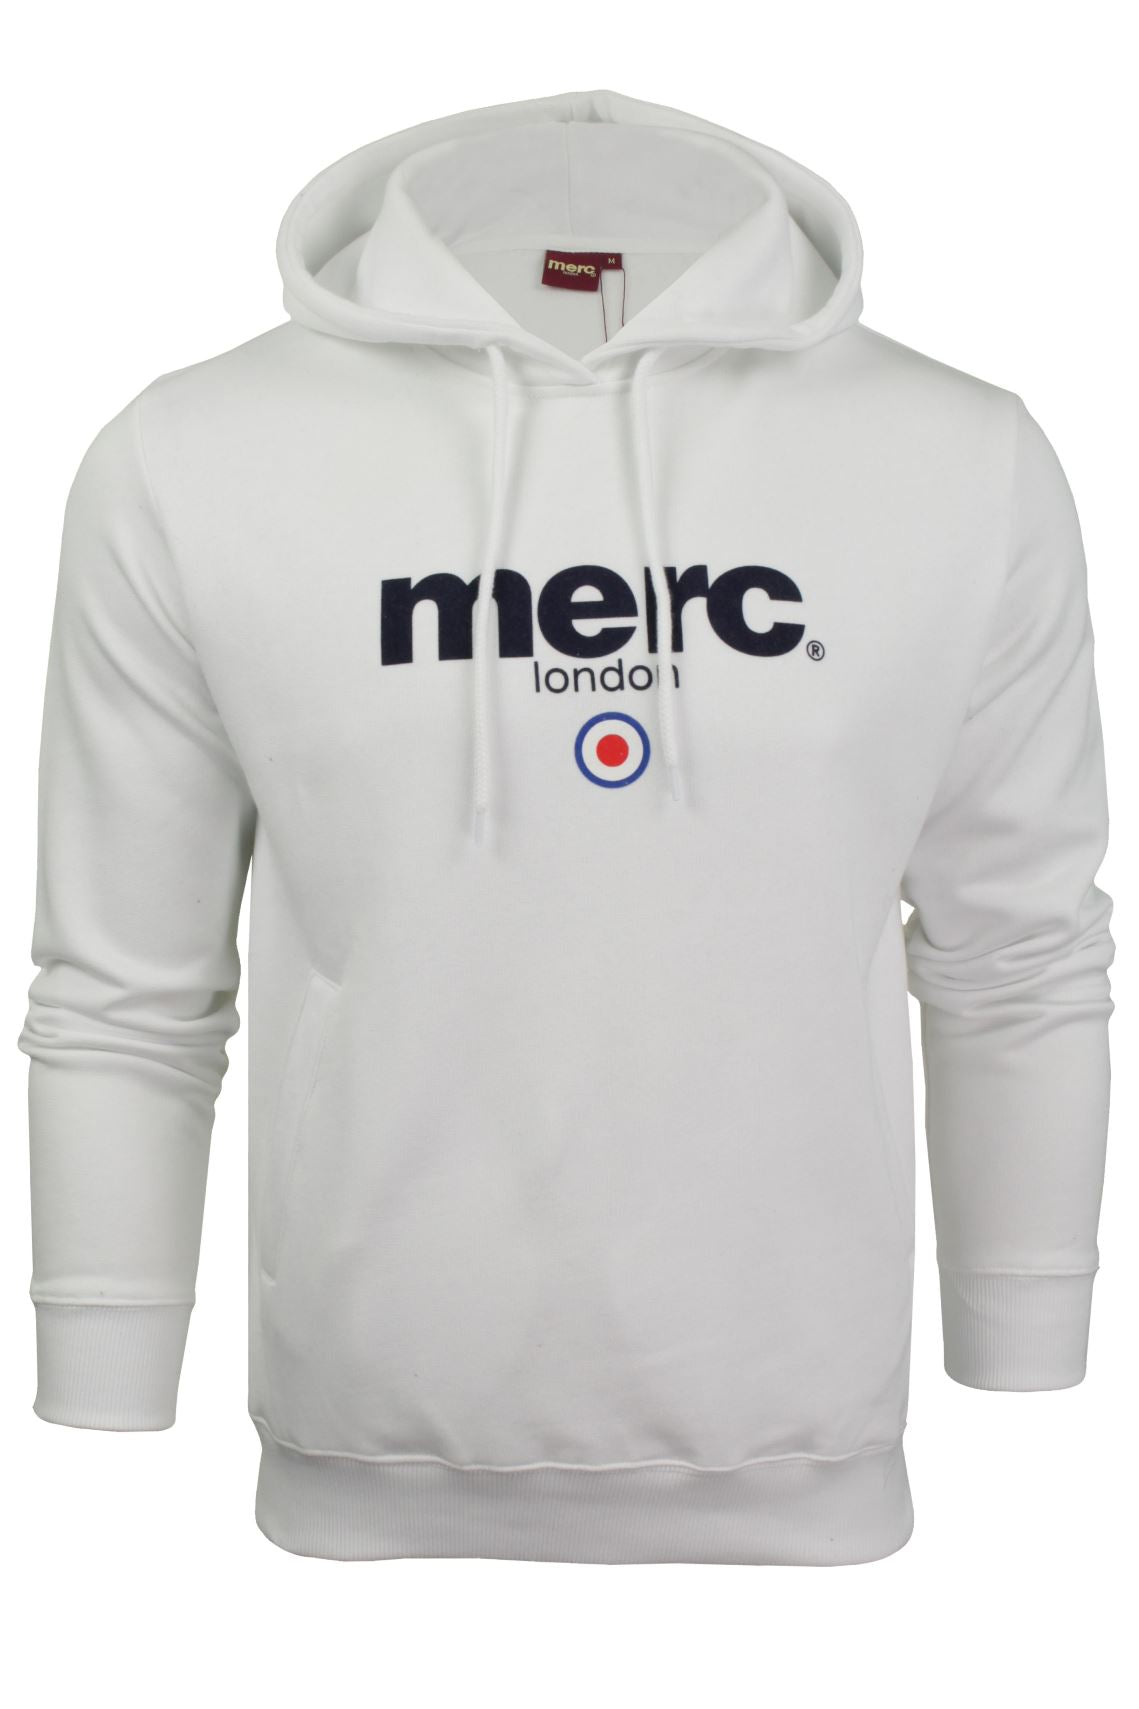 Mens Overhead Hoodie by Merc London 'Pill'_02_1804219_Pill